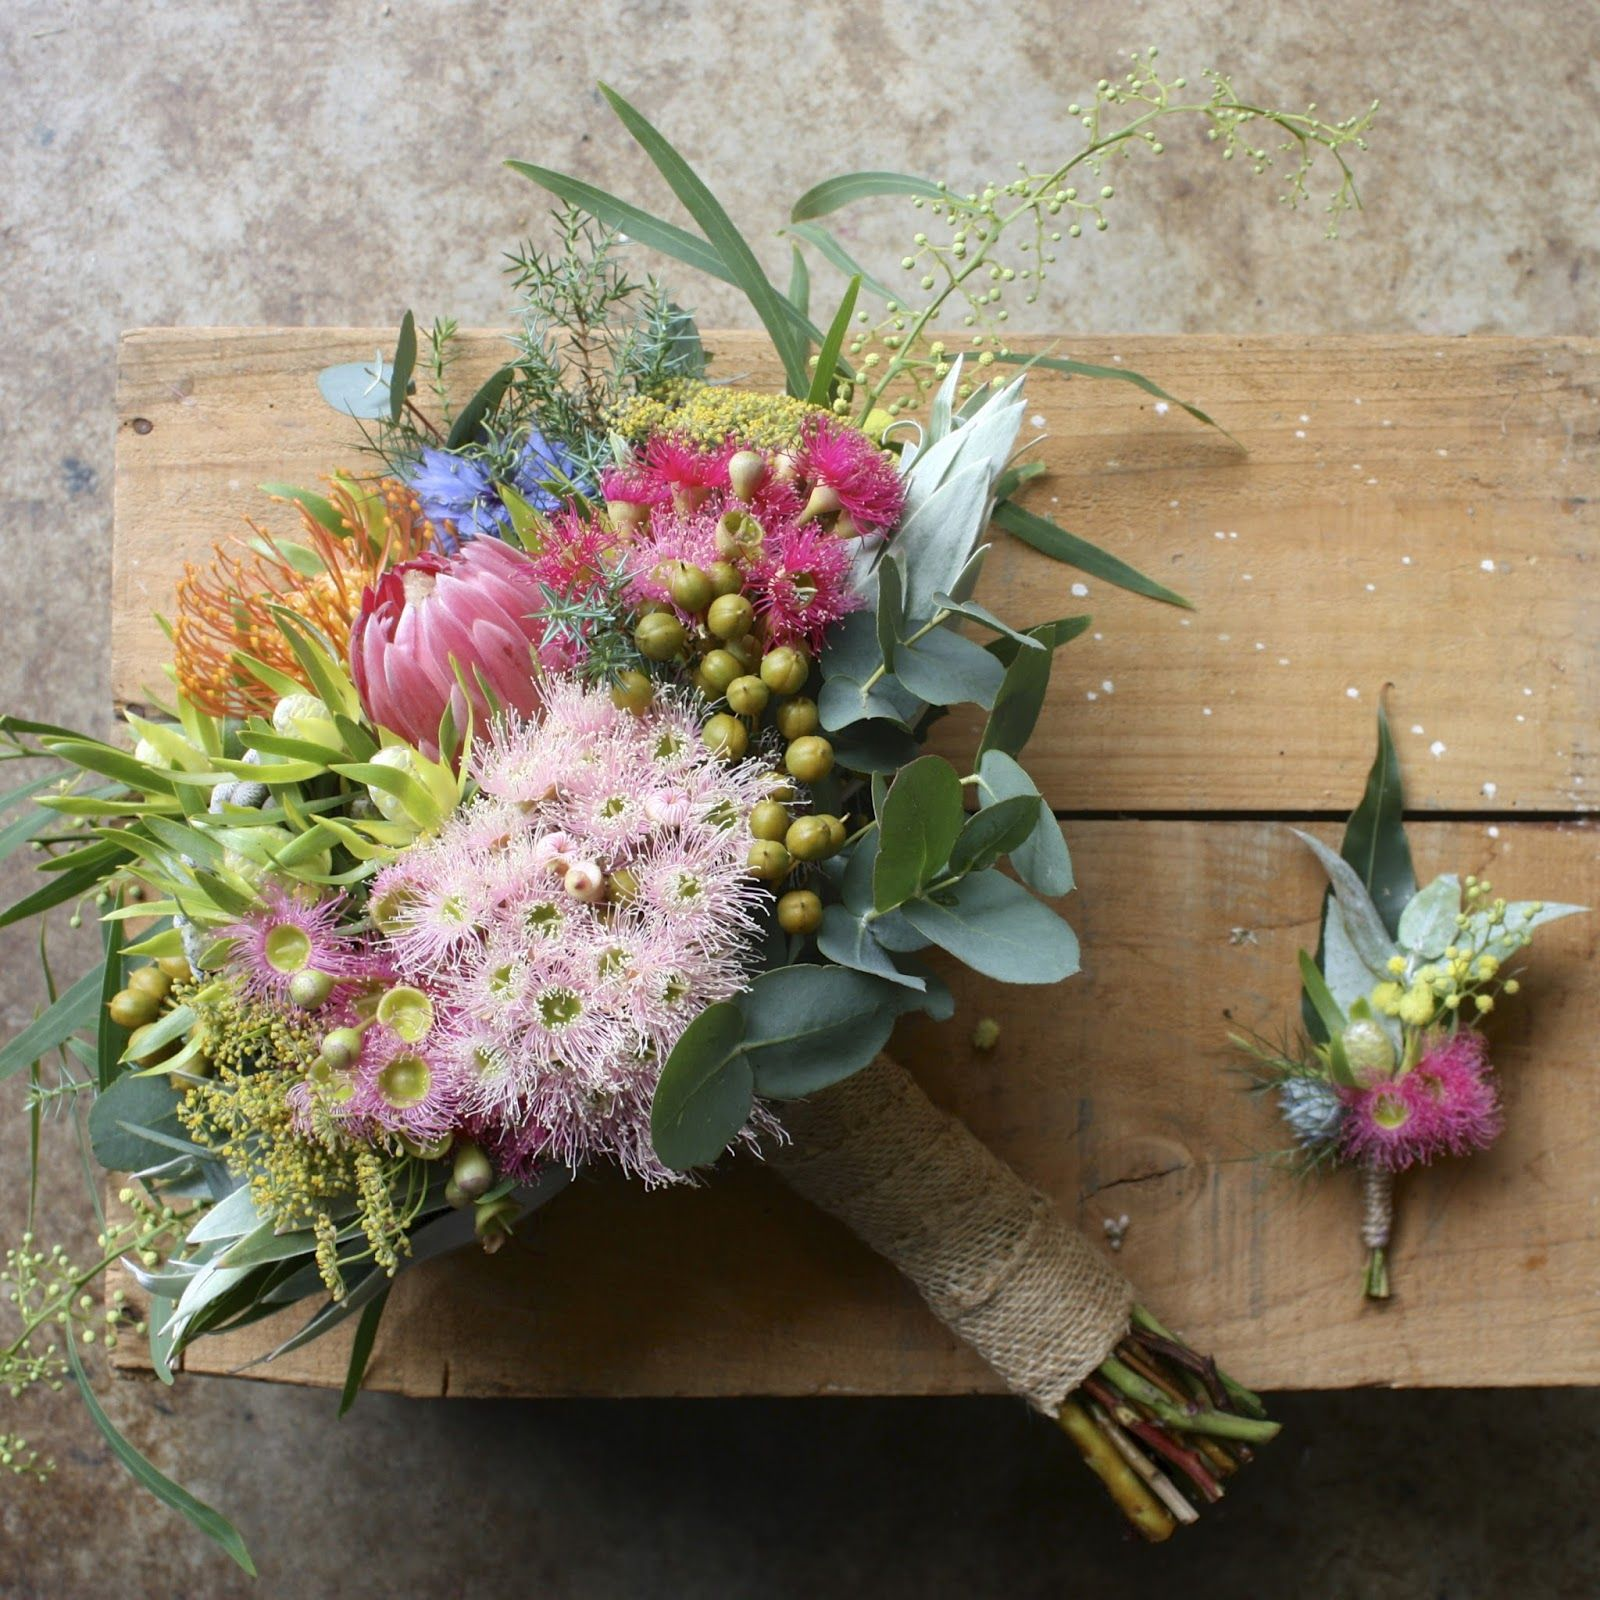 Wedding Flowers In February: In Late February, I Provided Flowers For A Wedding At